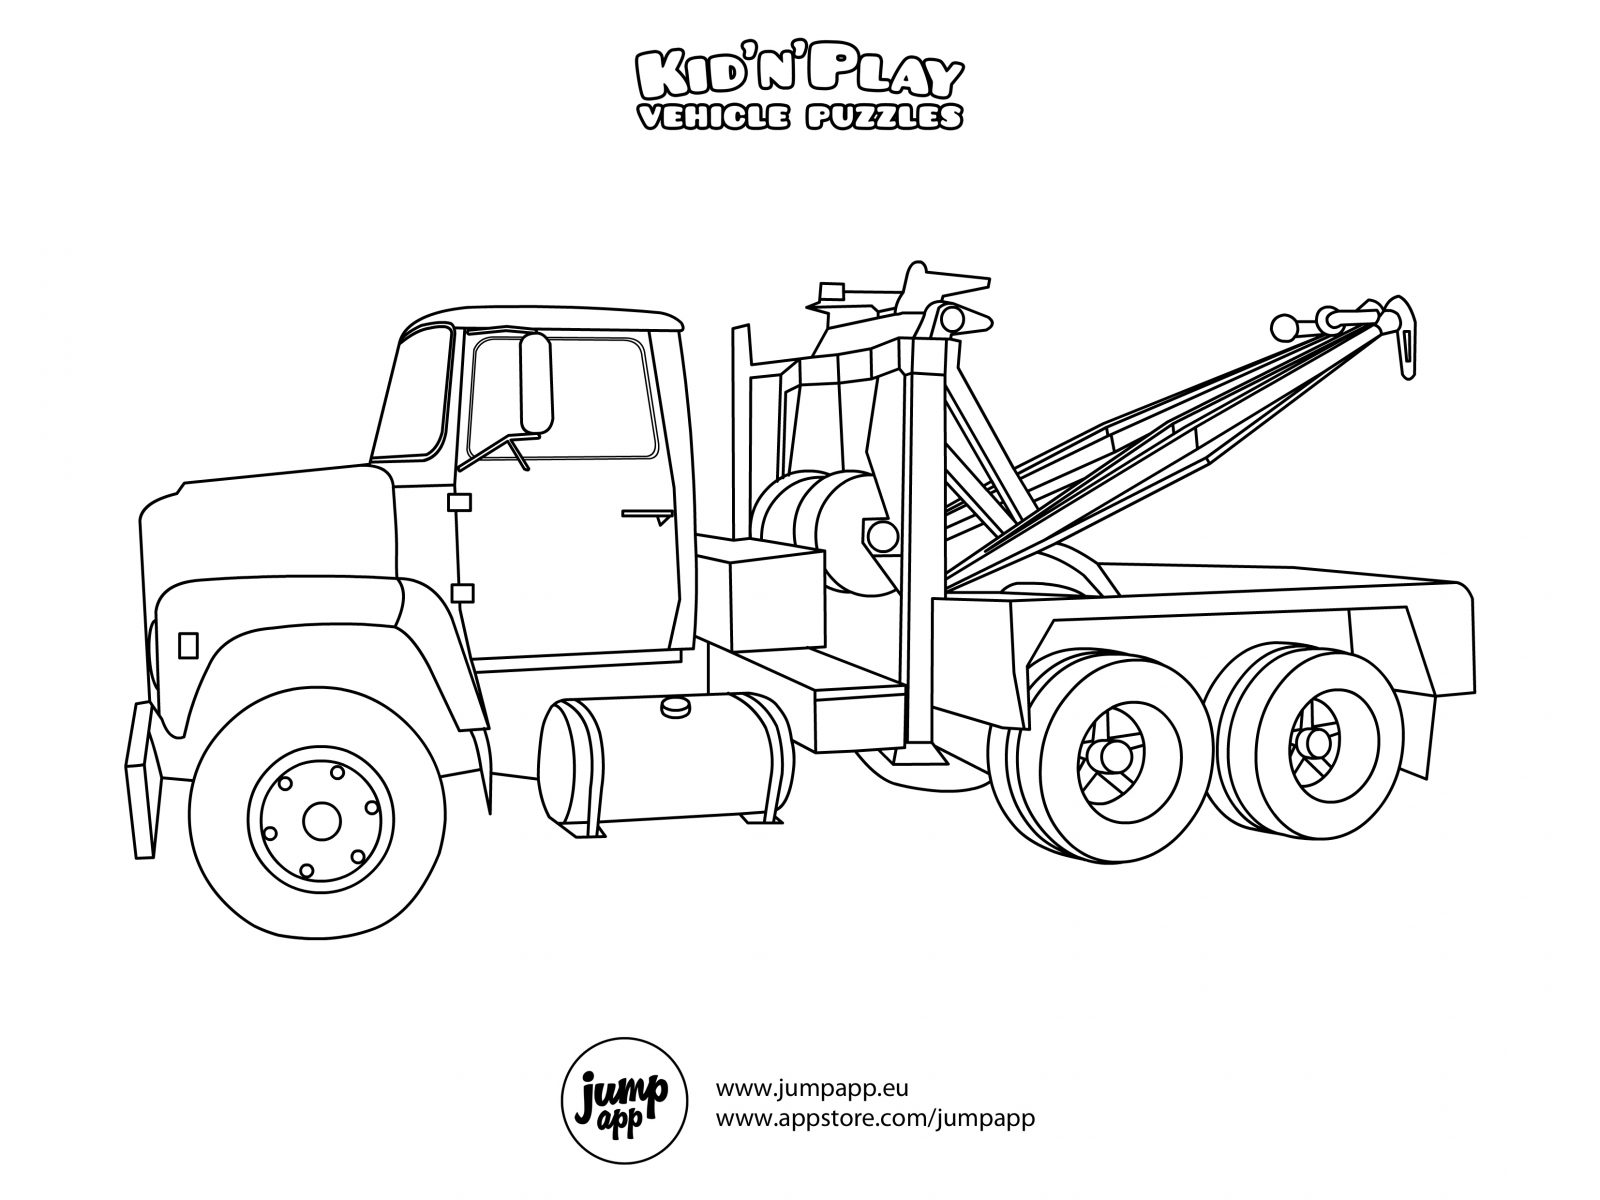 plow truck drawing at getdrawings com